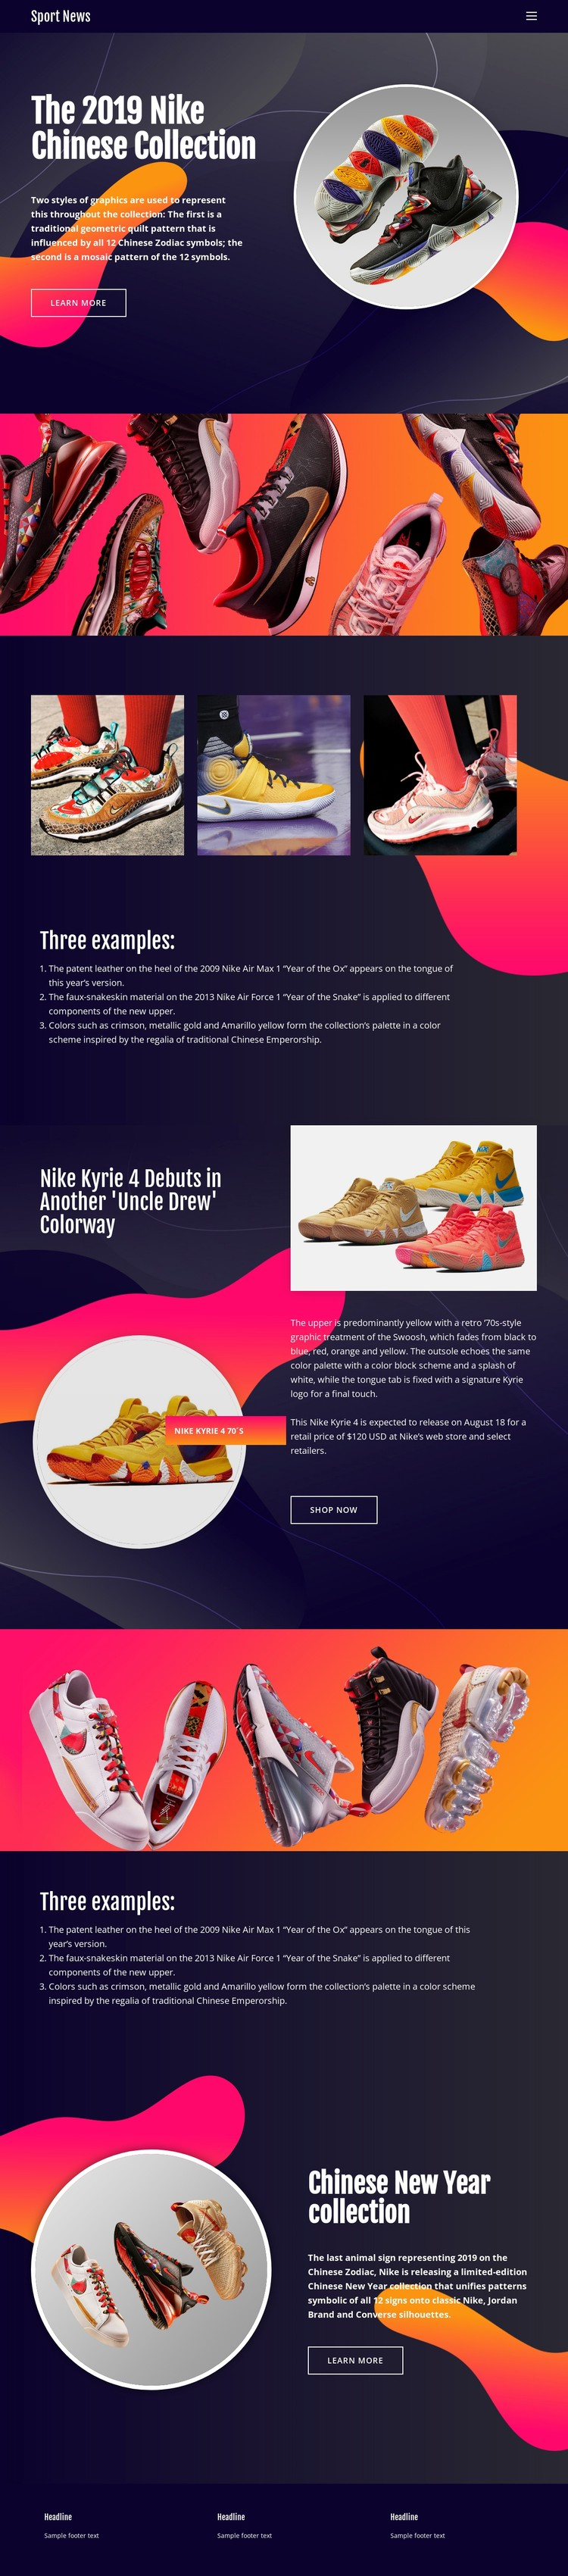 Nike Collection Static Site Generator